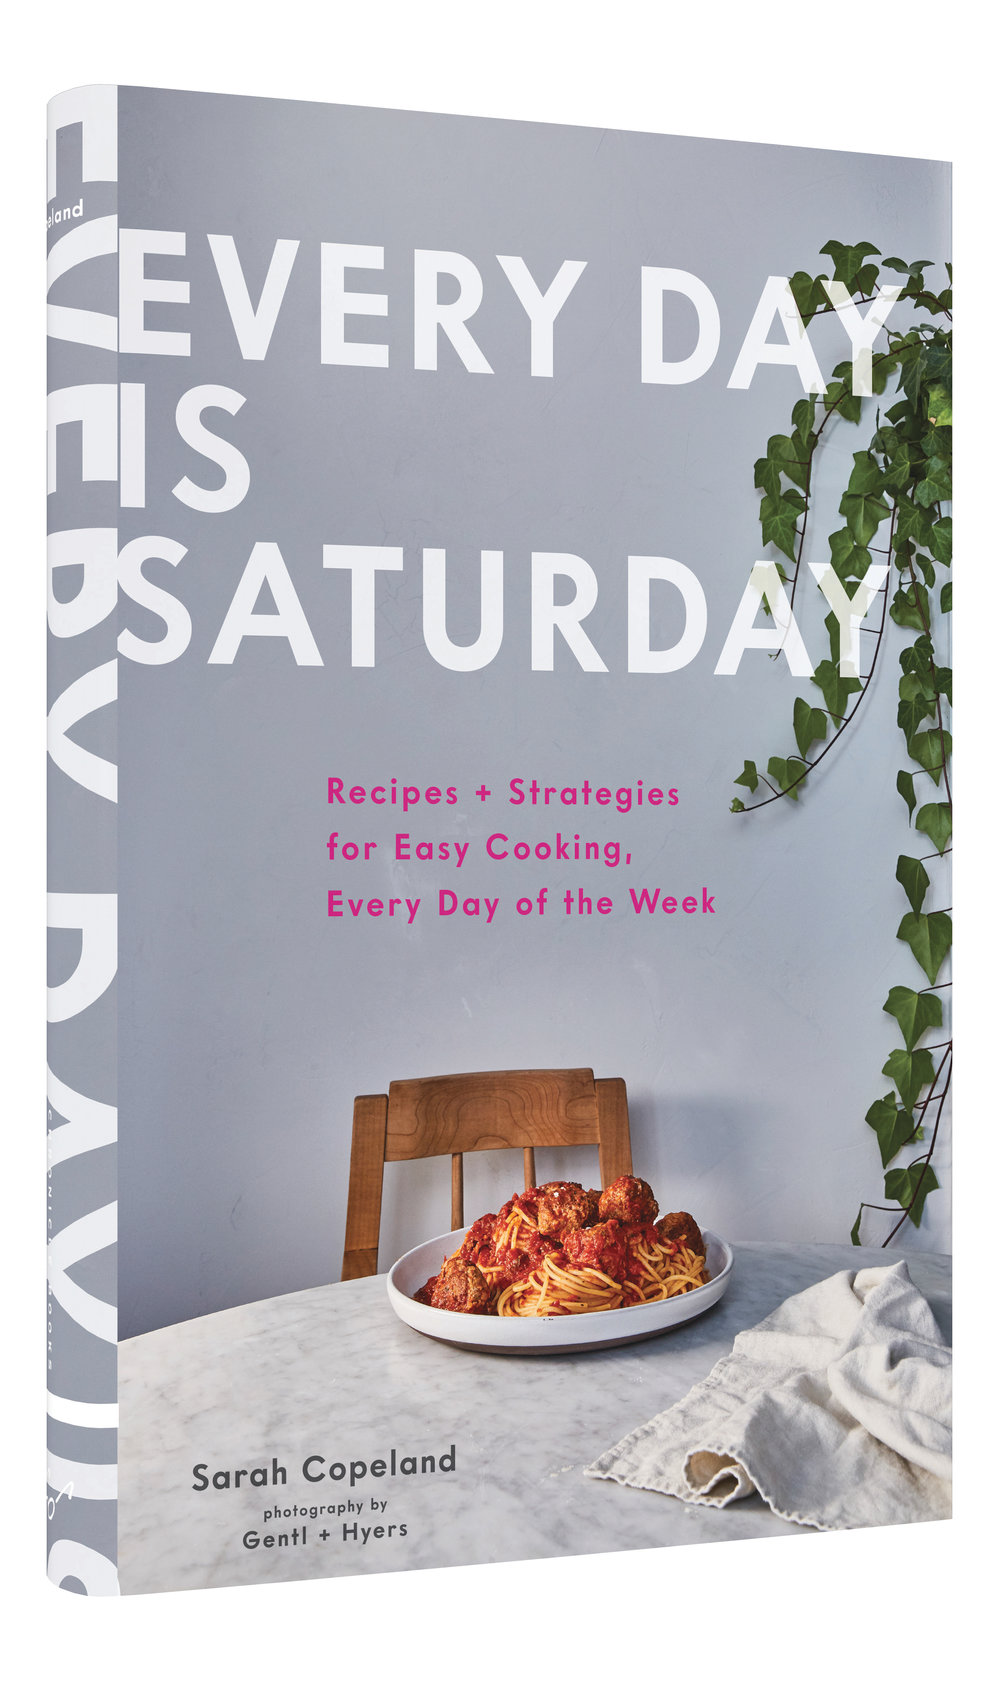 EVERY DAY IS SATURDAY: RECIPES & STRATEGIES FOR EASY COOKING EVERY DAY OF THE WEEK by Sarah Copeland #SarahCopeland #edibleliving #cookbooks #everydayissaturdaycookbook